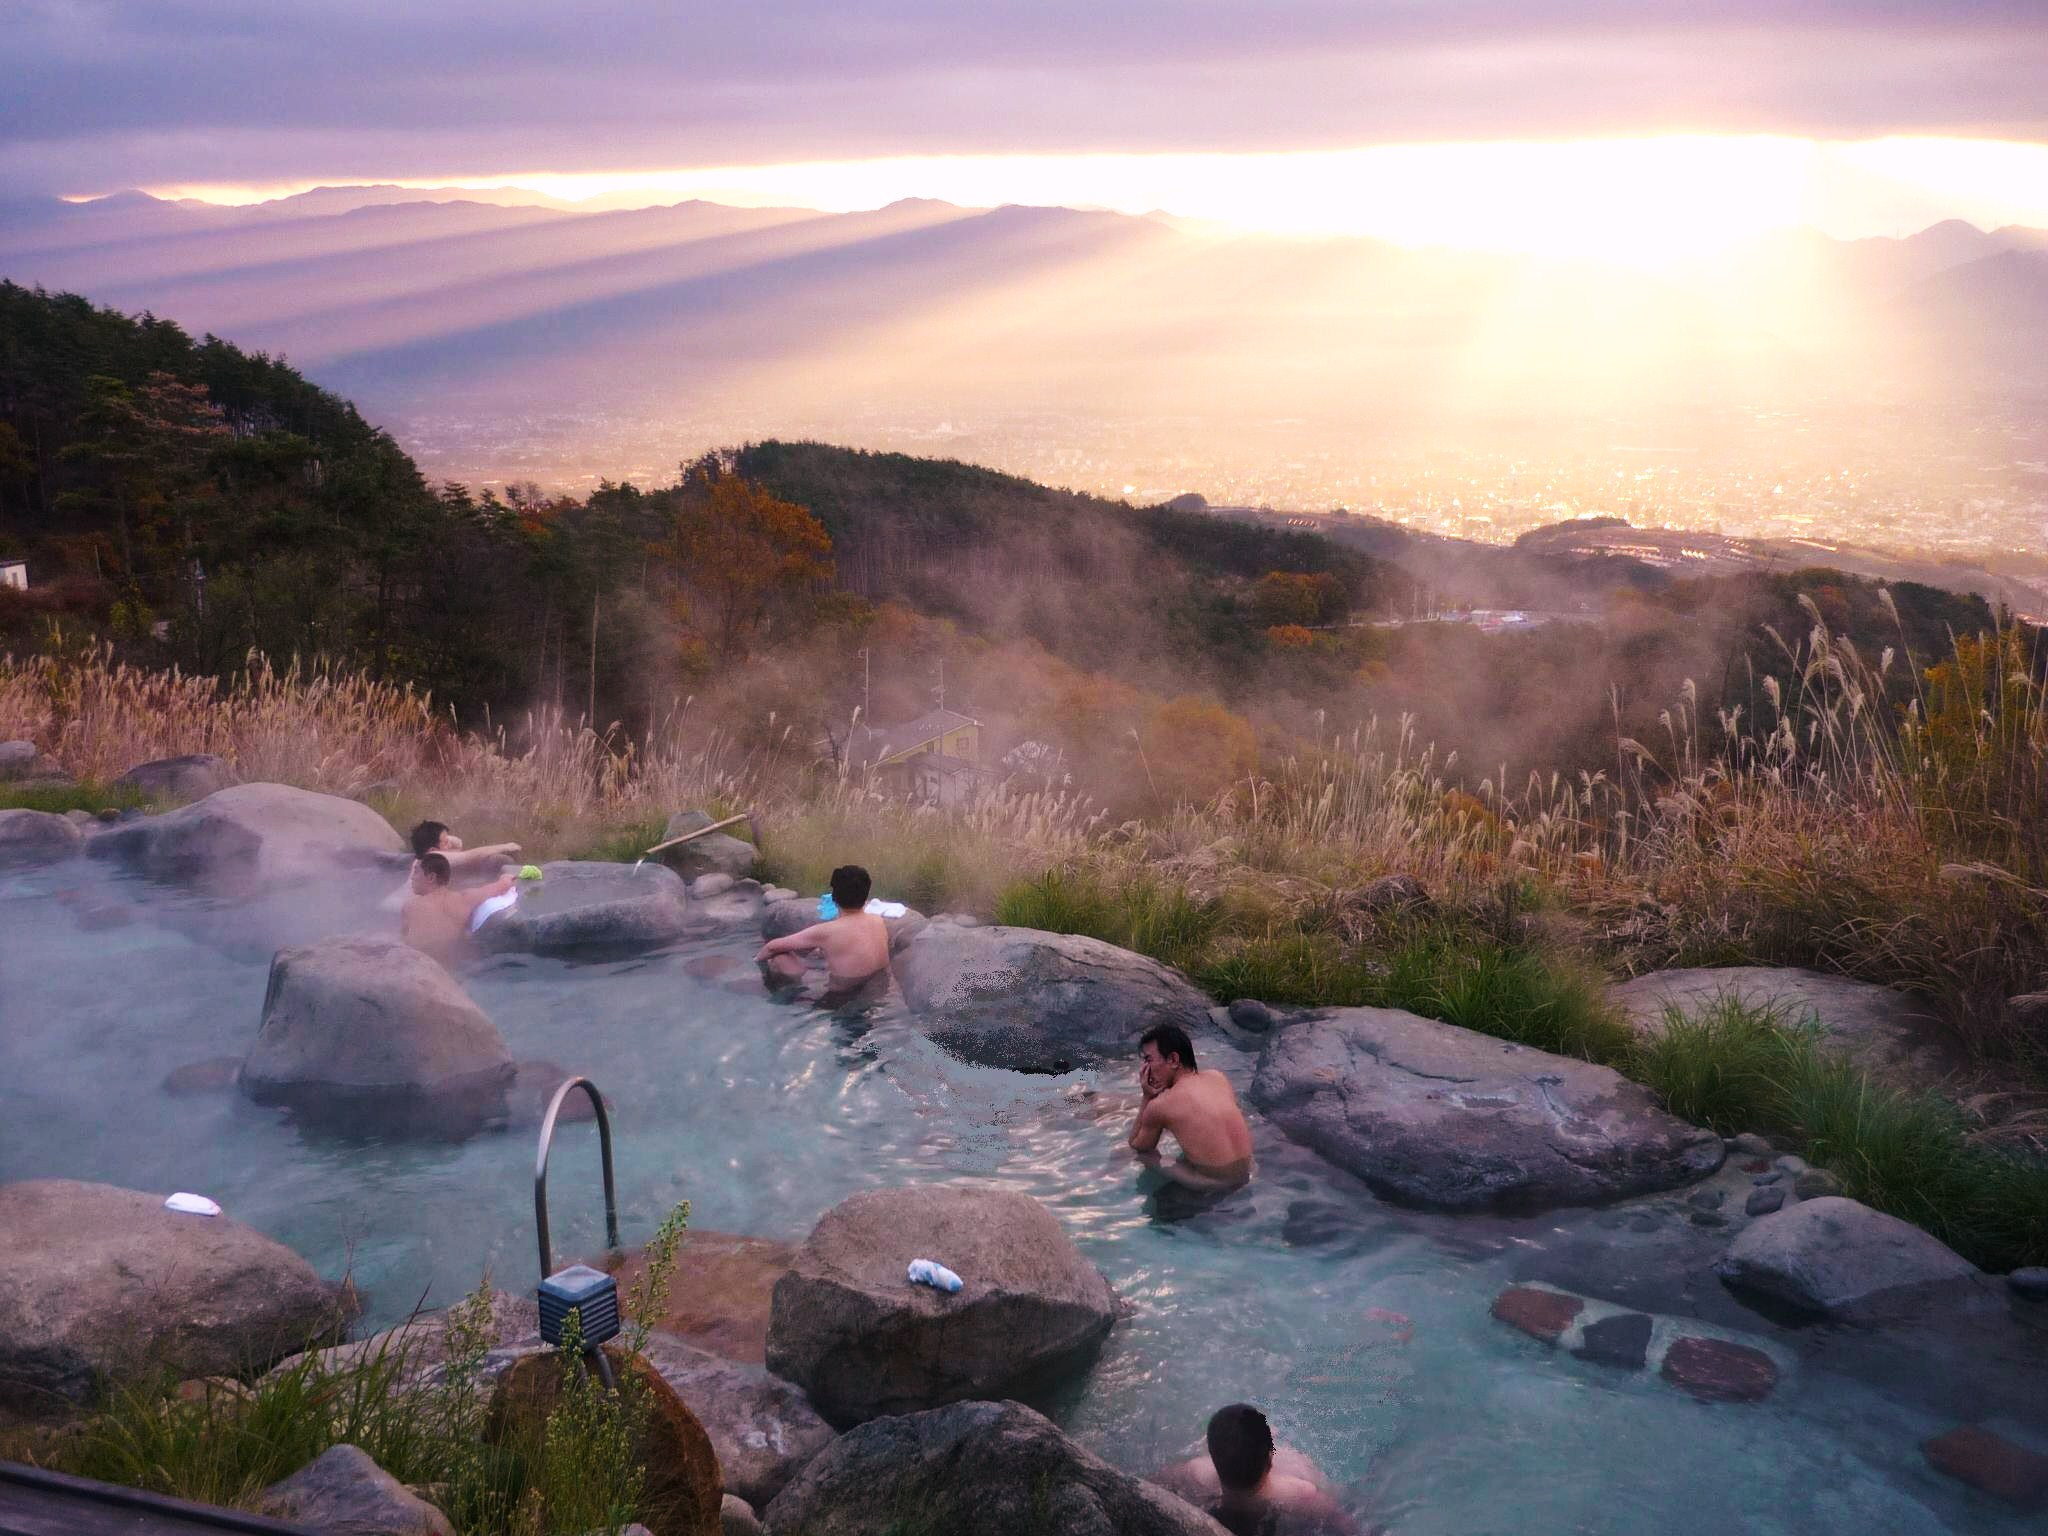 Hottarakashi Onsen, on one page charms and highlights quickly, (Neglecting Hot  Spring), Yamanashi – Fantastic places in cool Japan